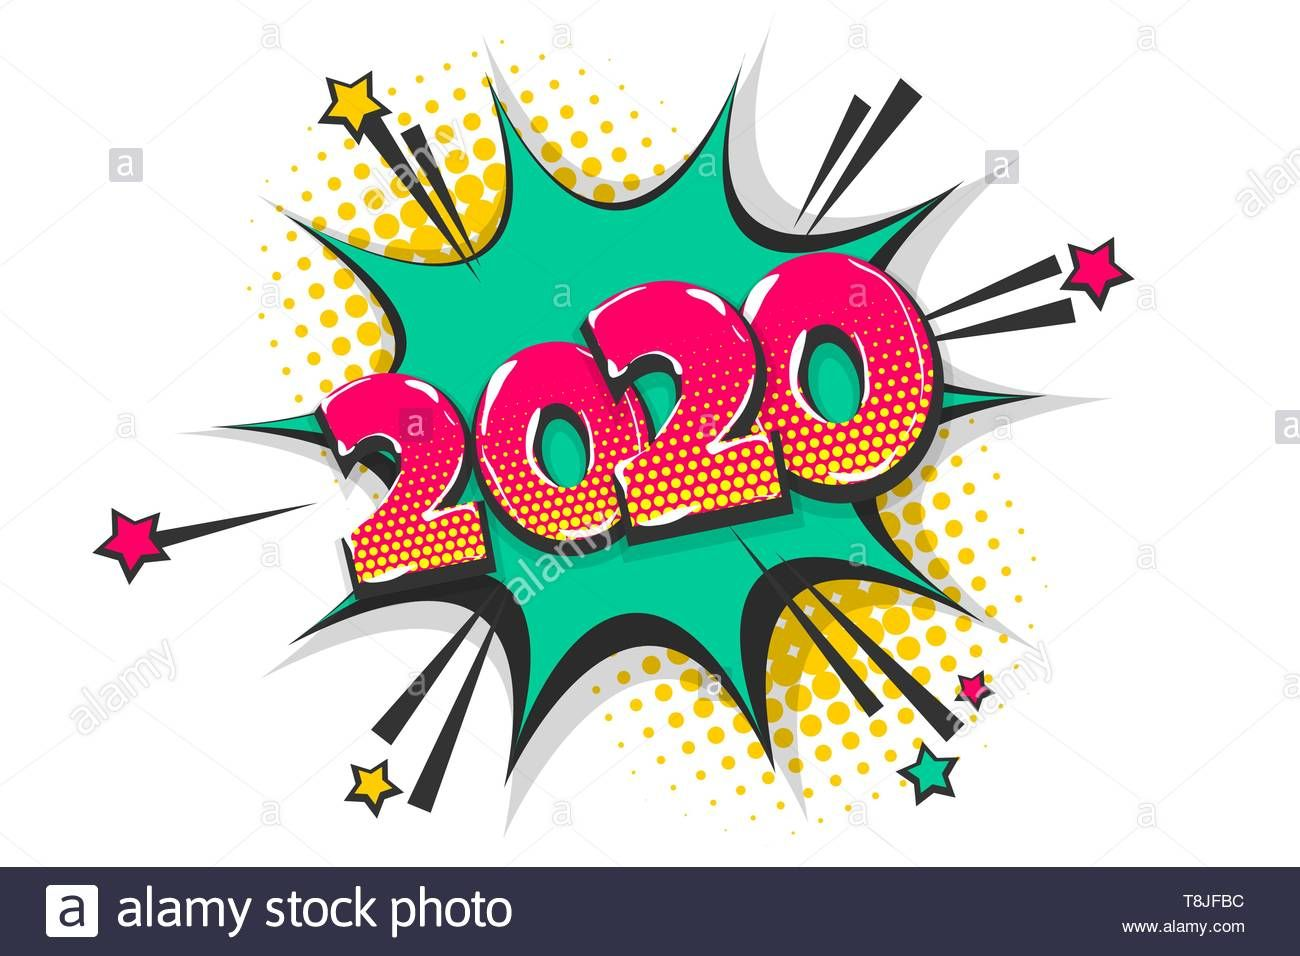 Download this stock vector 2020 comic text speech bubble